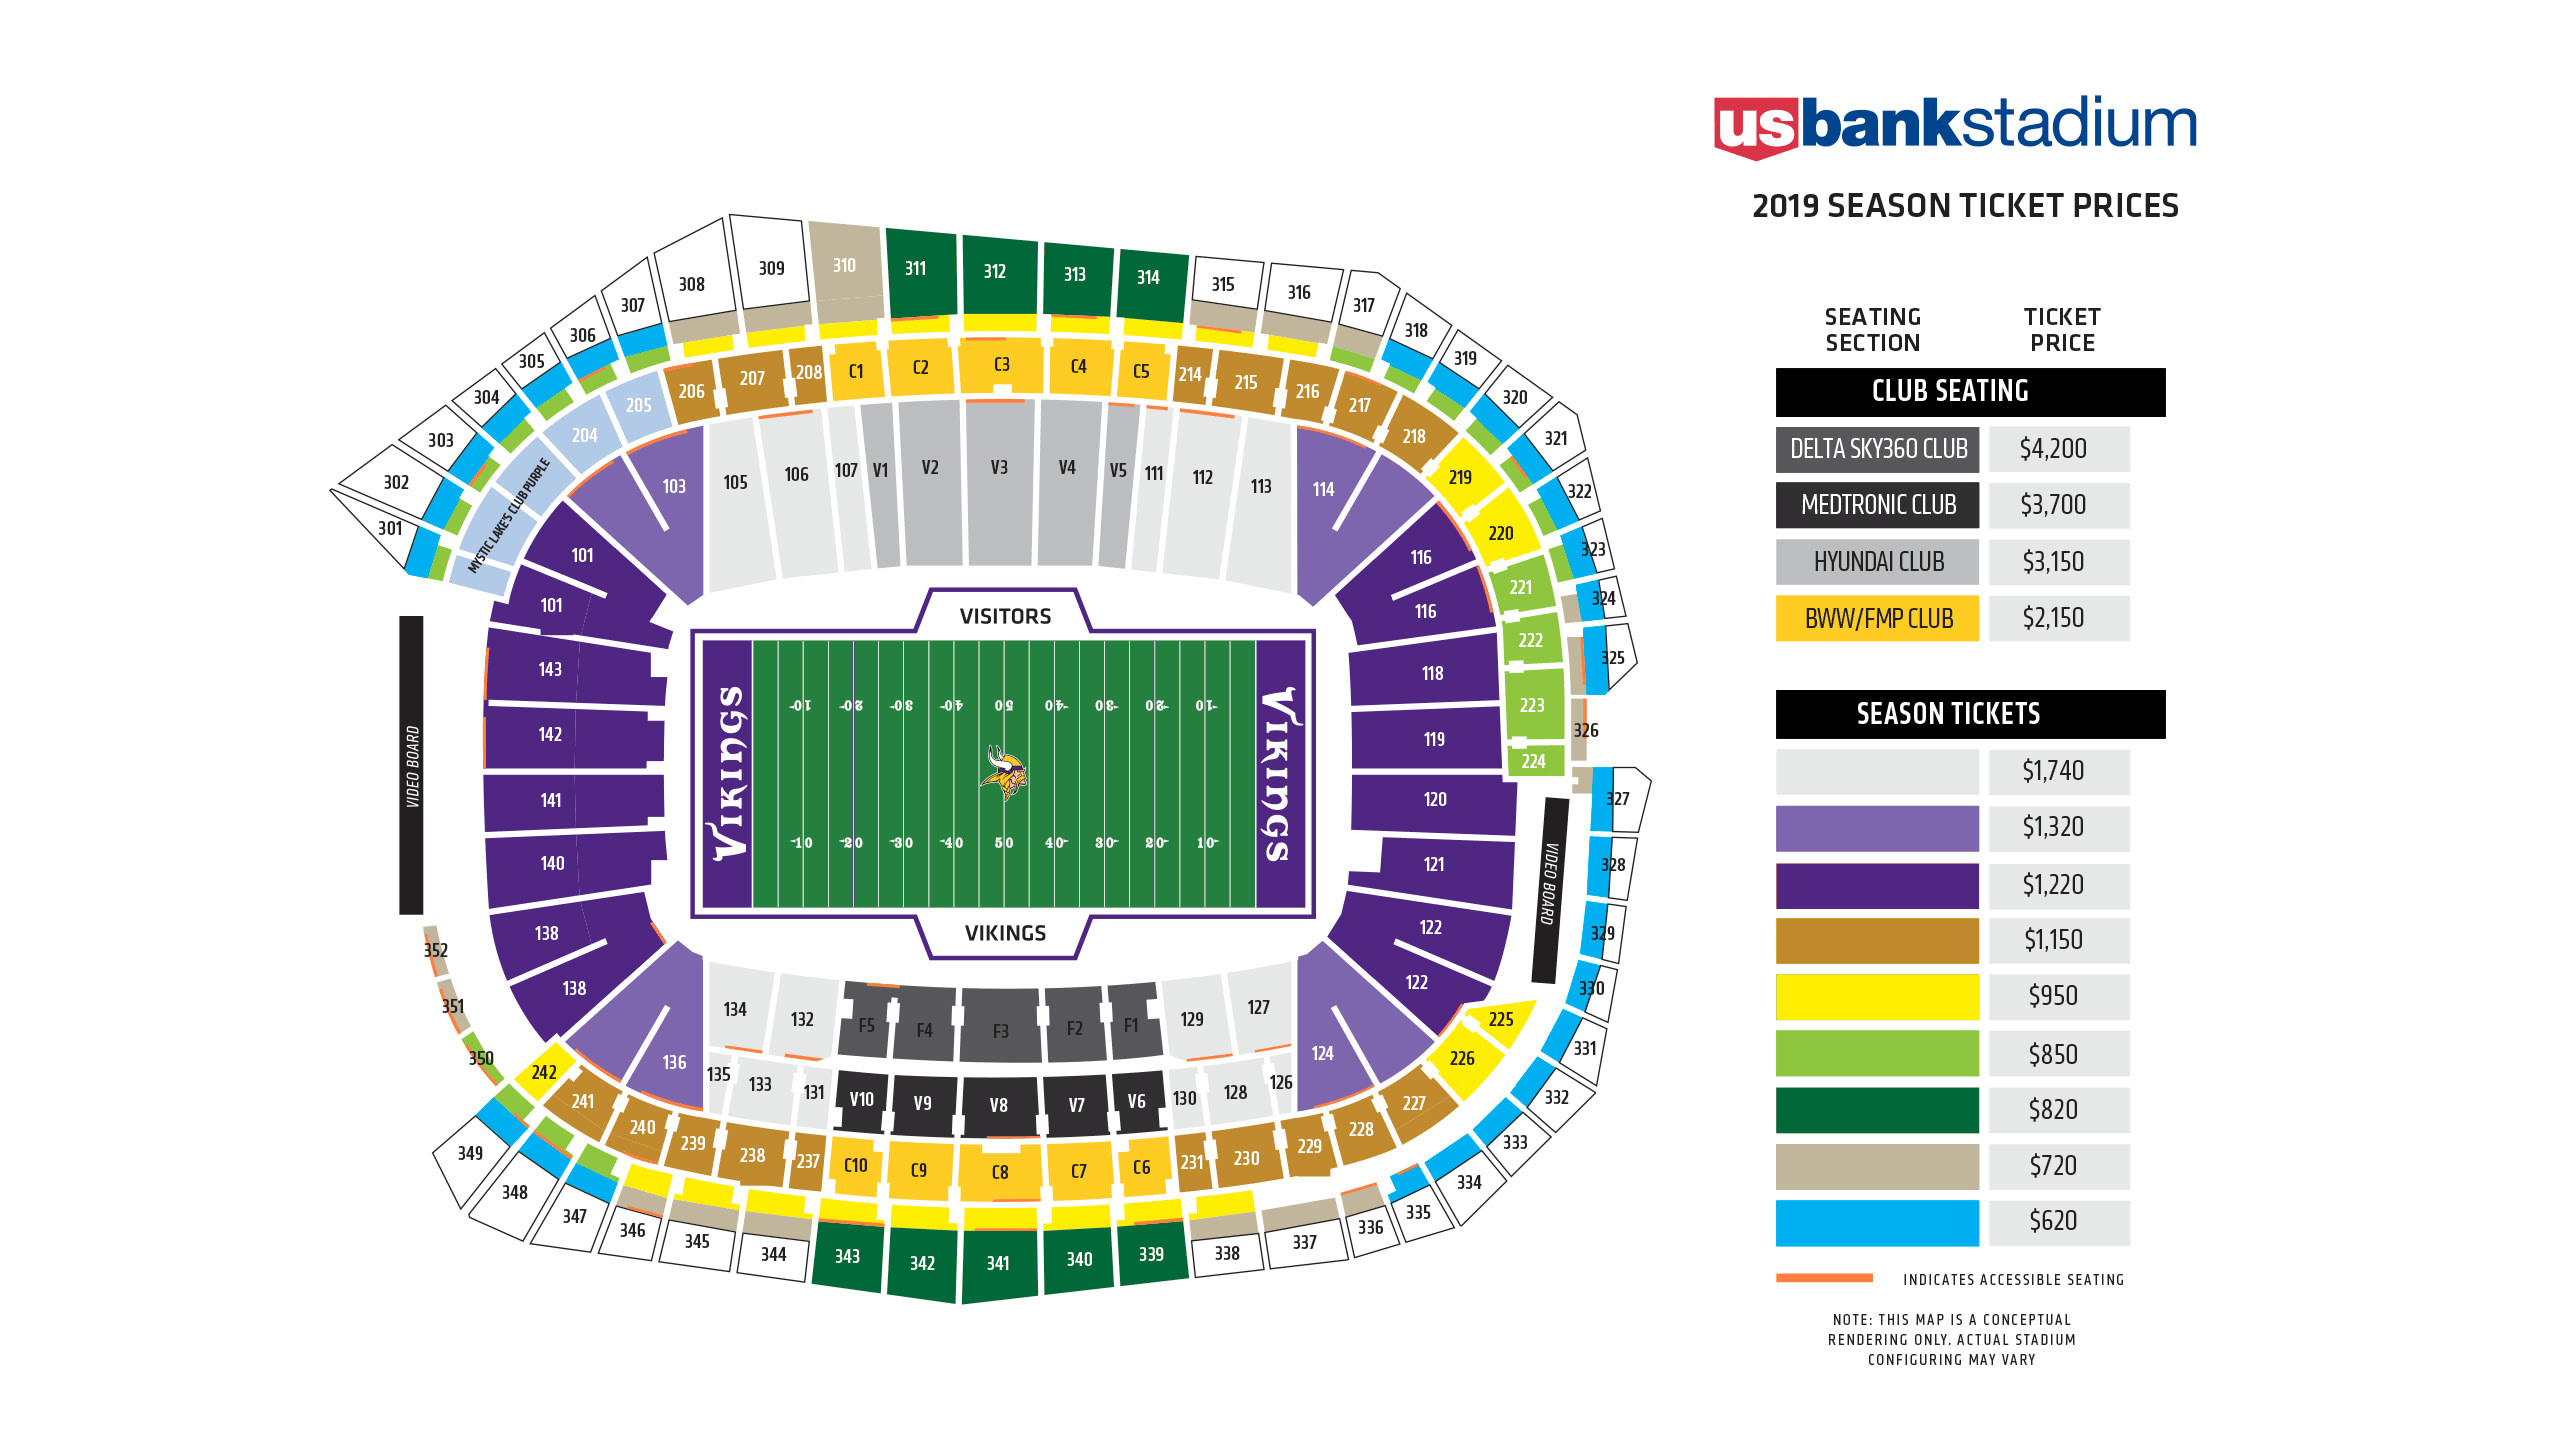 Vikings Seating Chart At Us Bank Stadium Minnesota Vikings - Minnesota-in-us-map